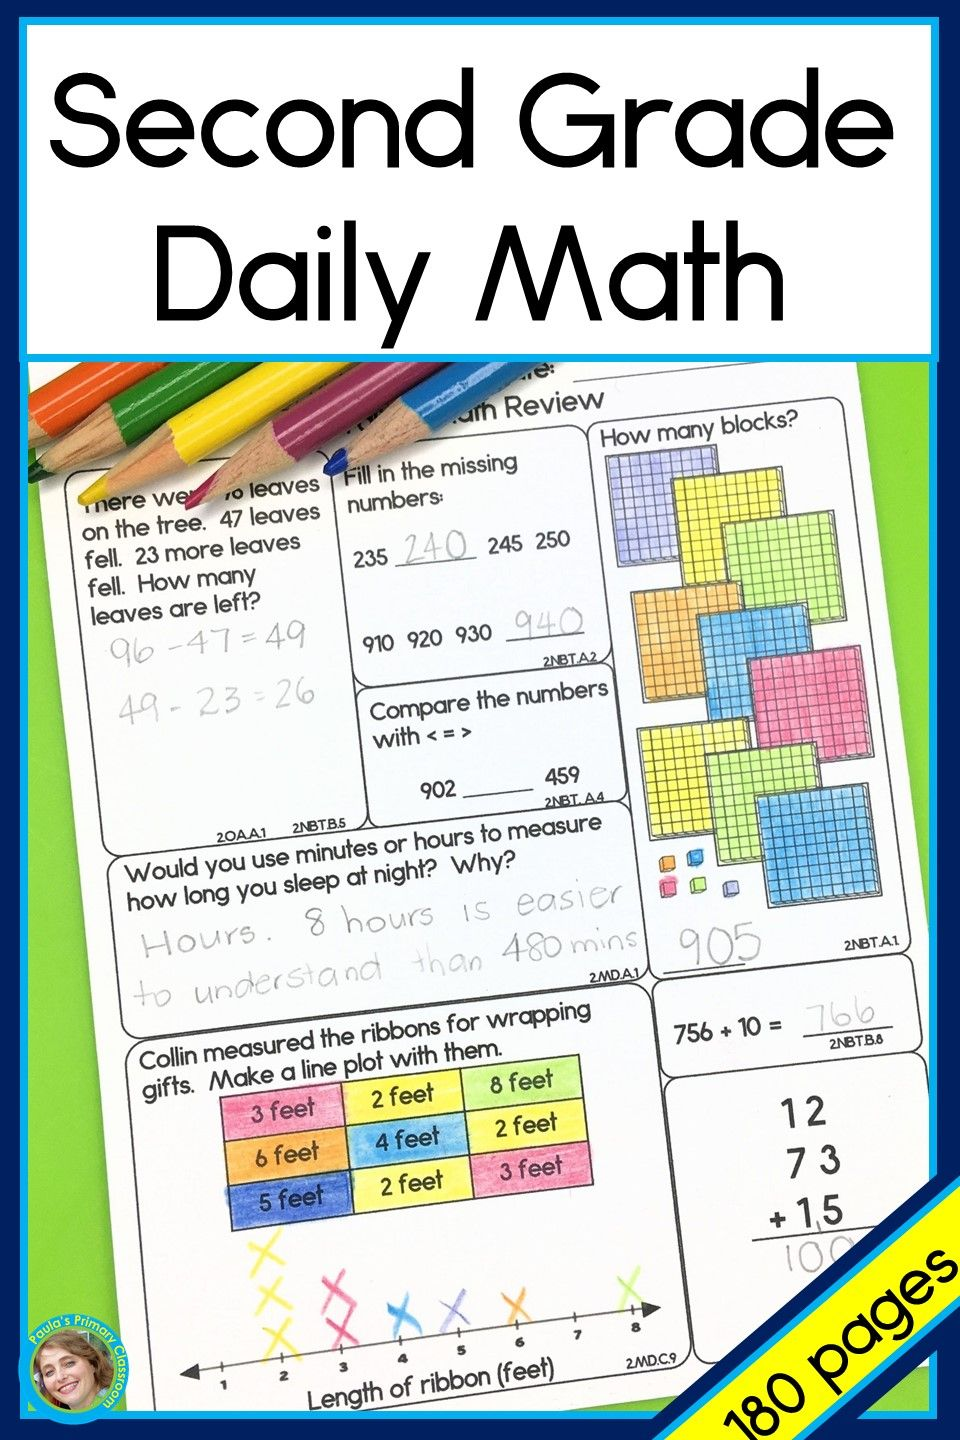 hight resolution of Second Grade Daily Math spiraling year long curriculum covering Common Core  State Standards   Daily math